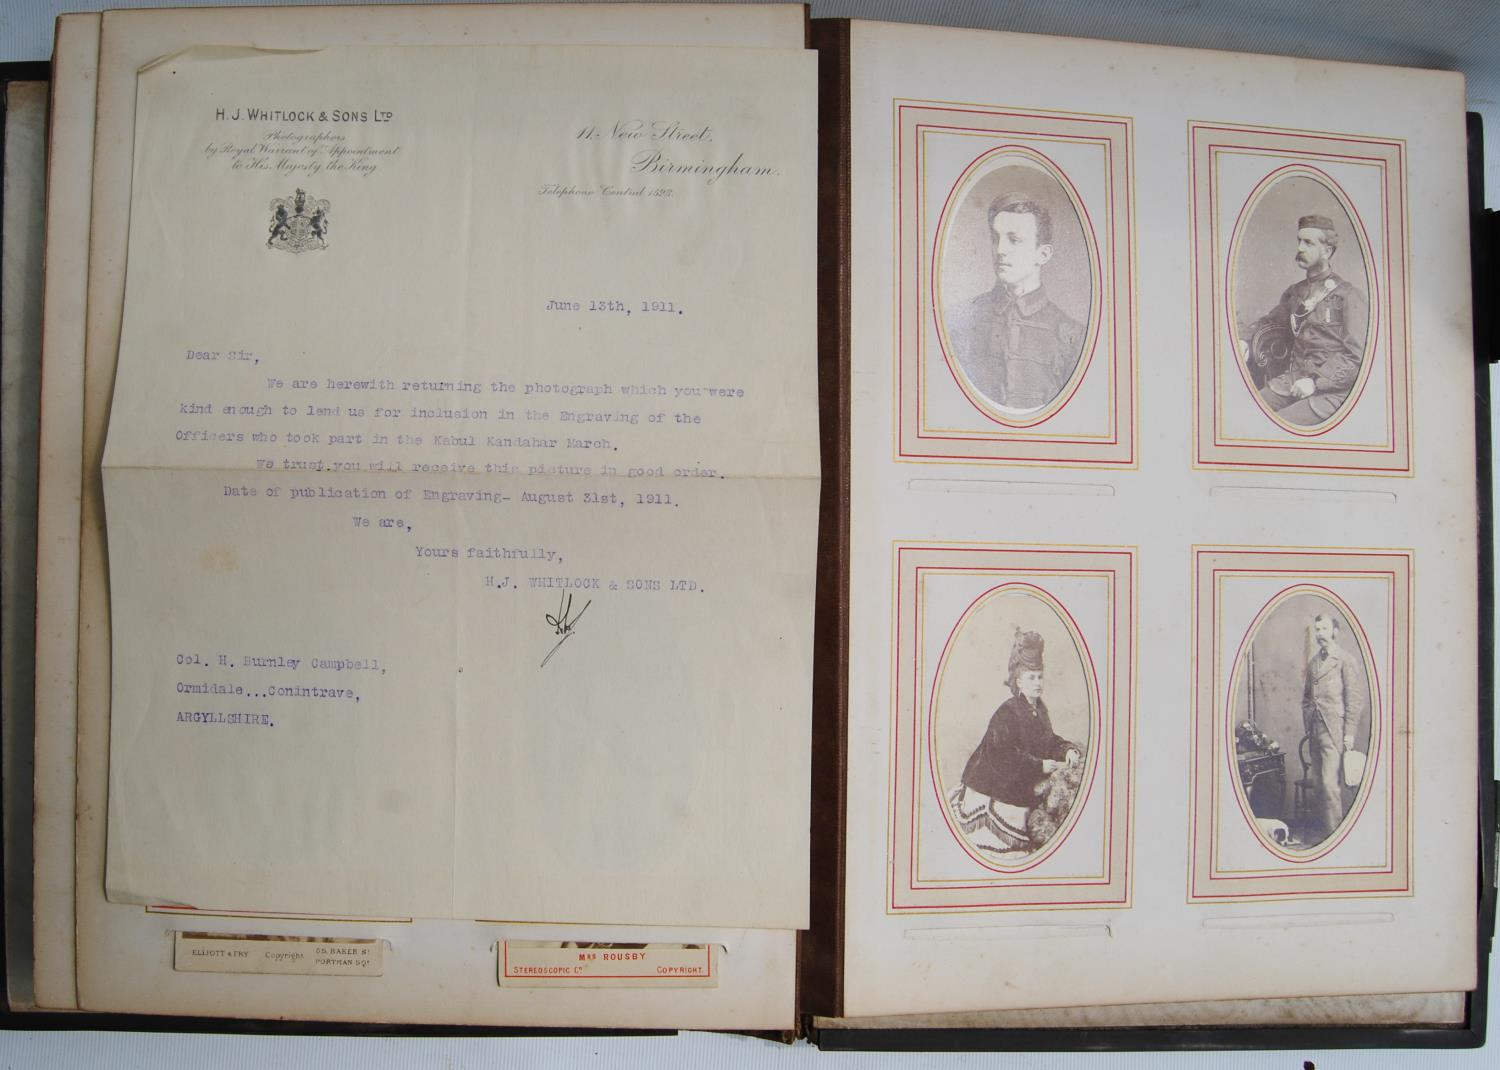 Victorian photograph album belong to Harden Burnley, signed 1870, comprising of royalty, officers - Image 7 of 10